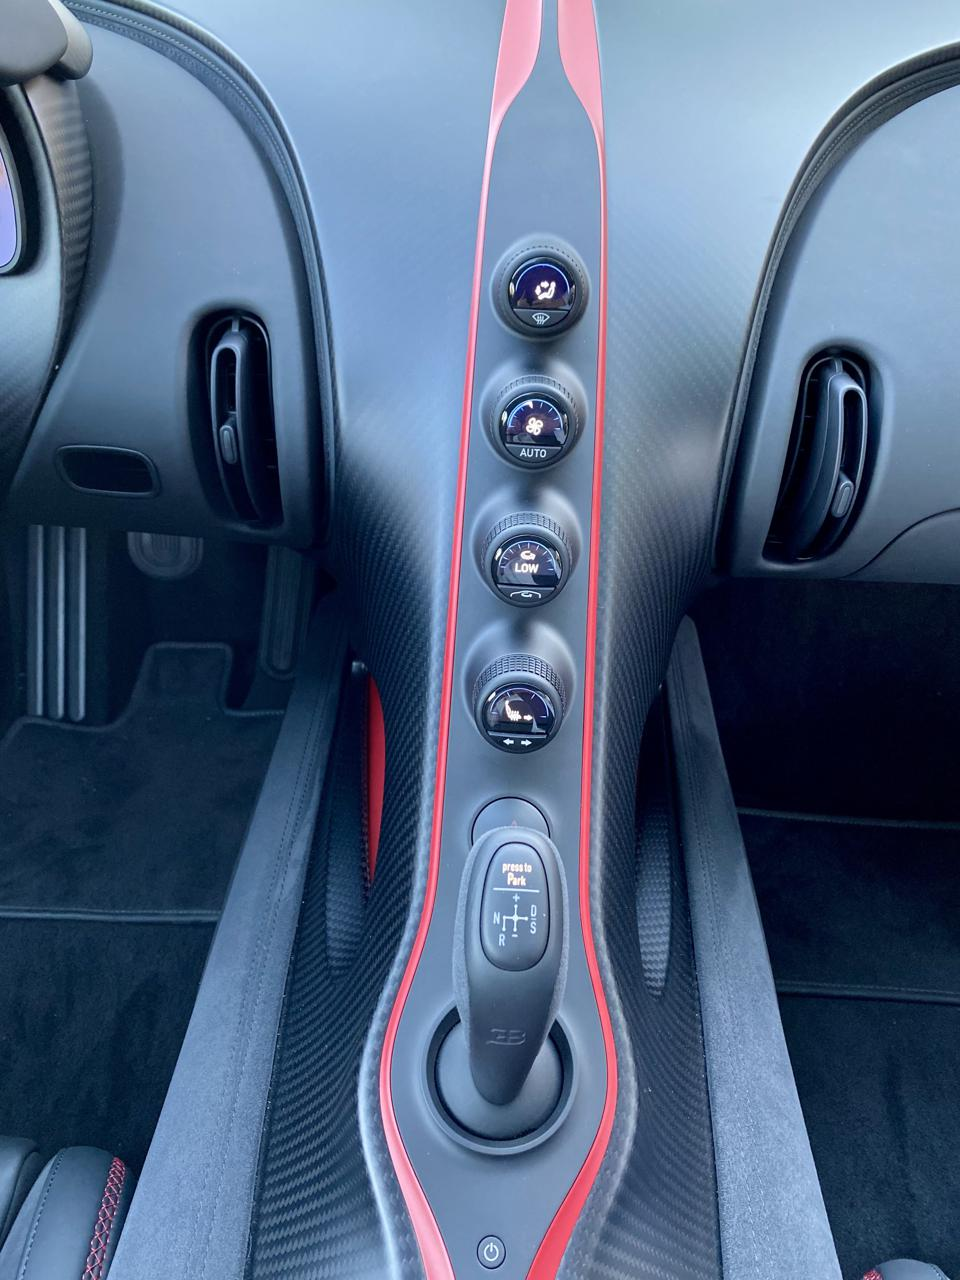 Pur Sport interior features exposed carbon-fiber. A more sporting esthetic.